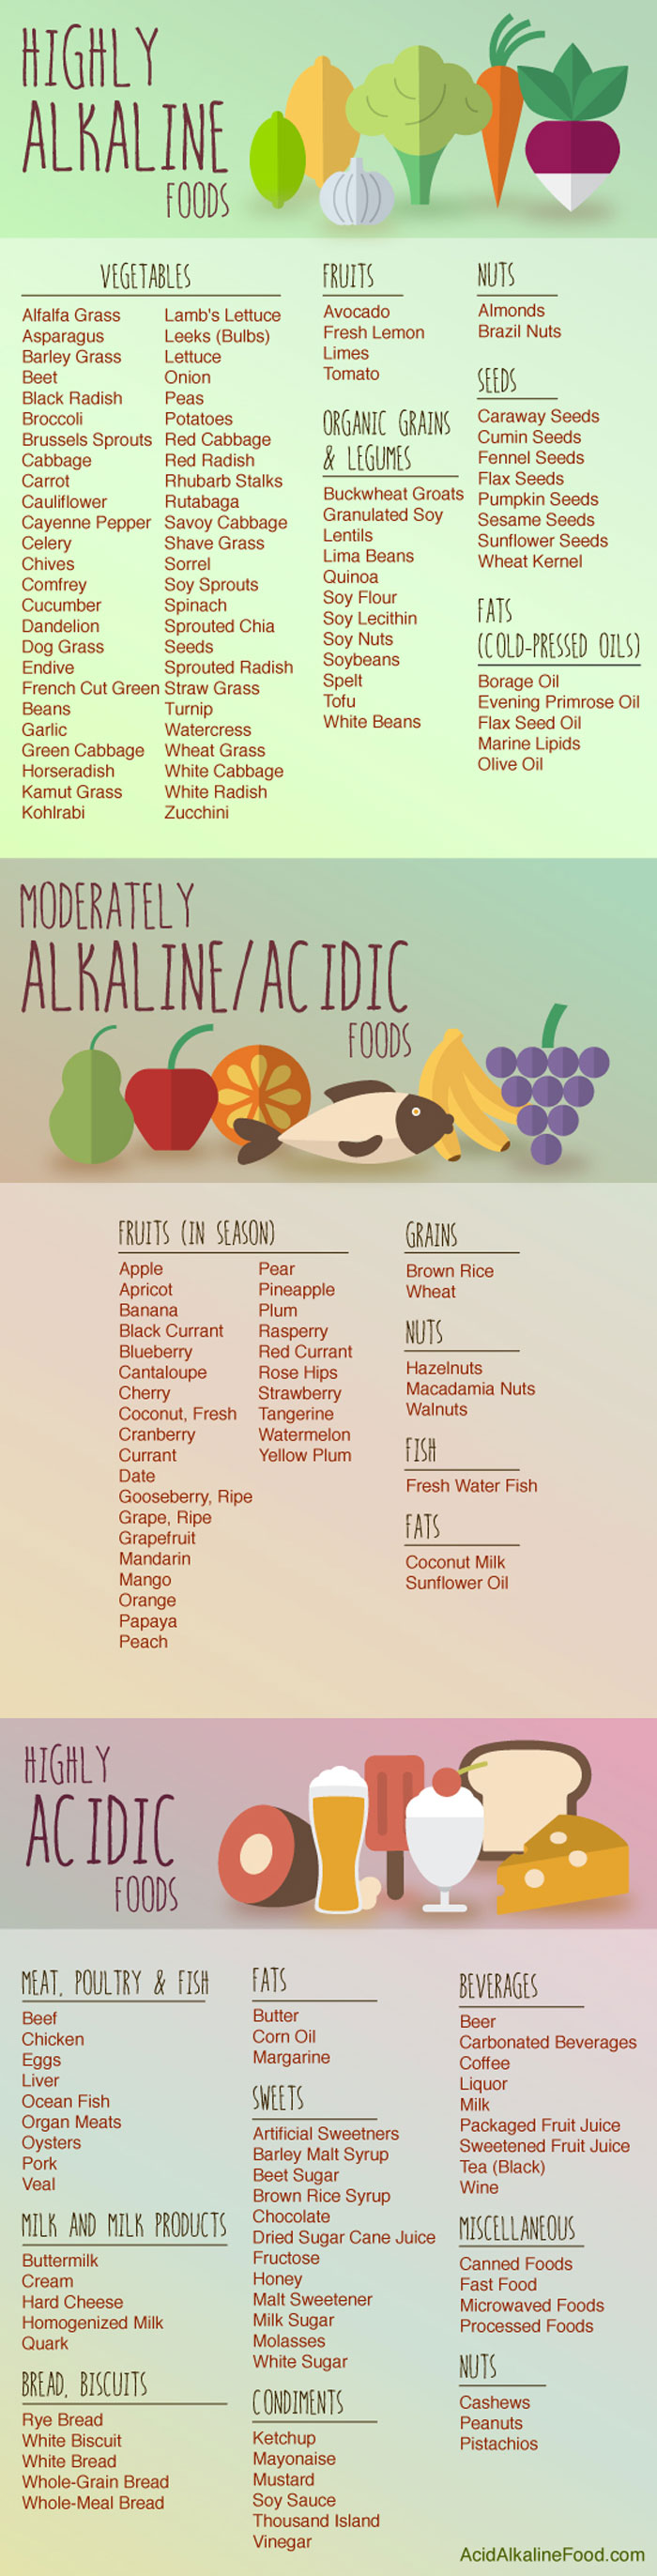 Alkaline Food Images | the acid alkaline foods list asana